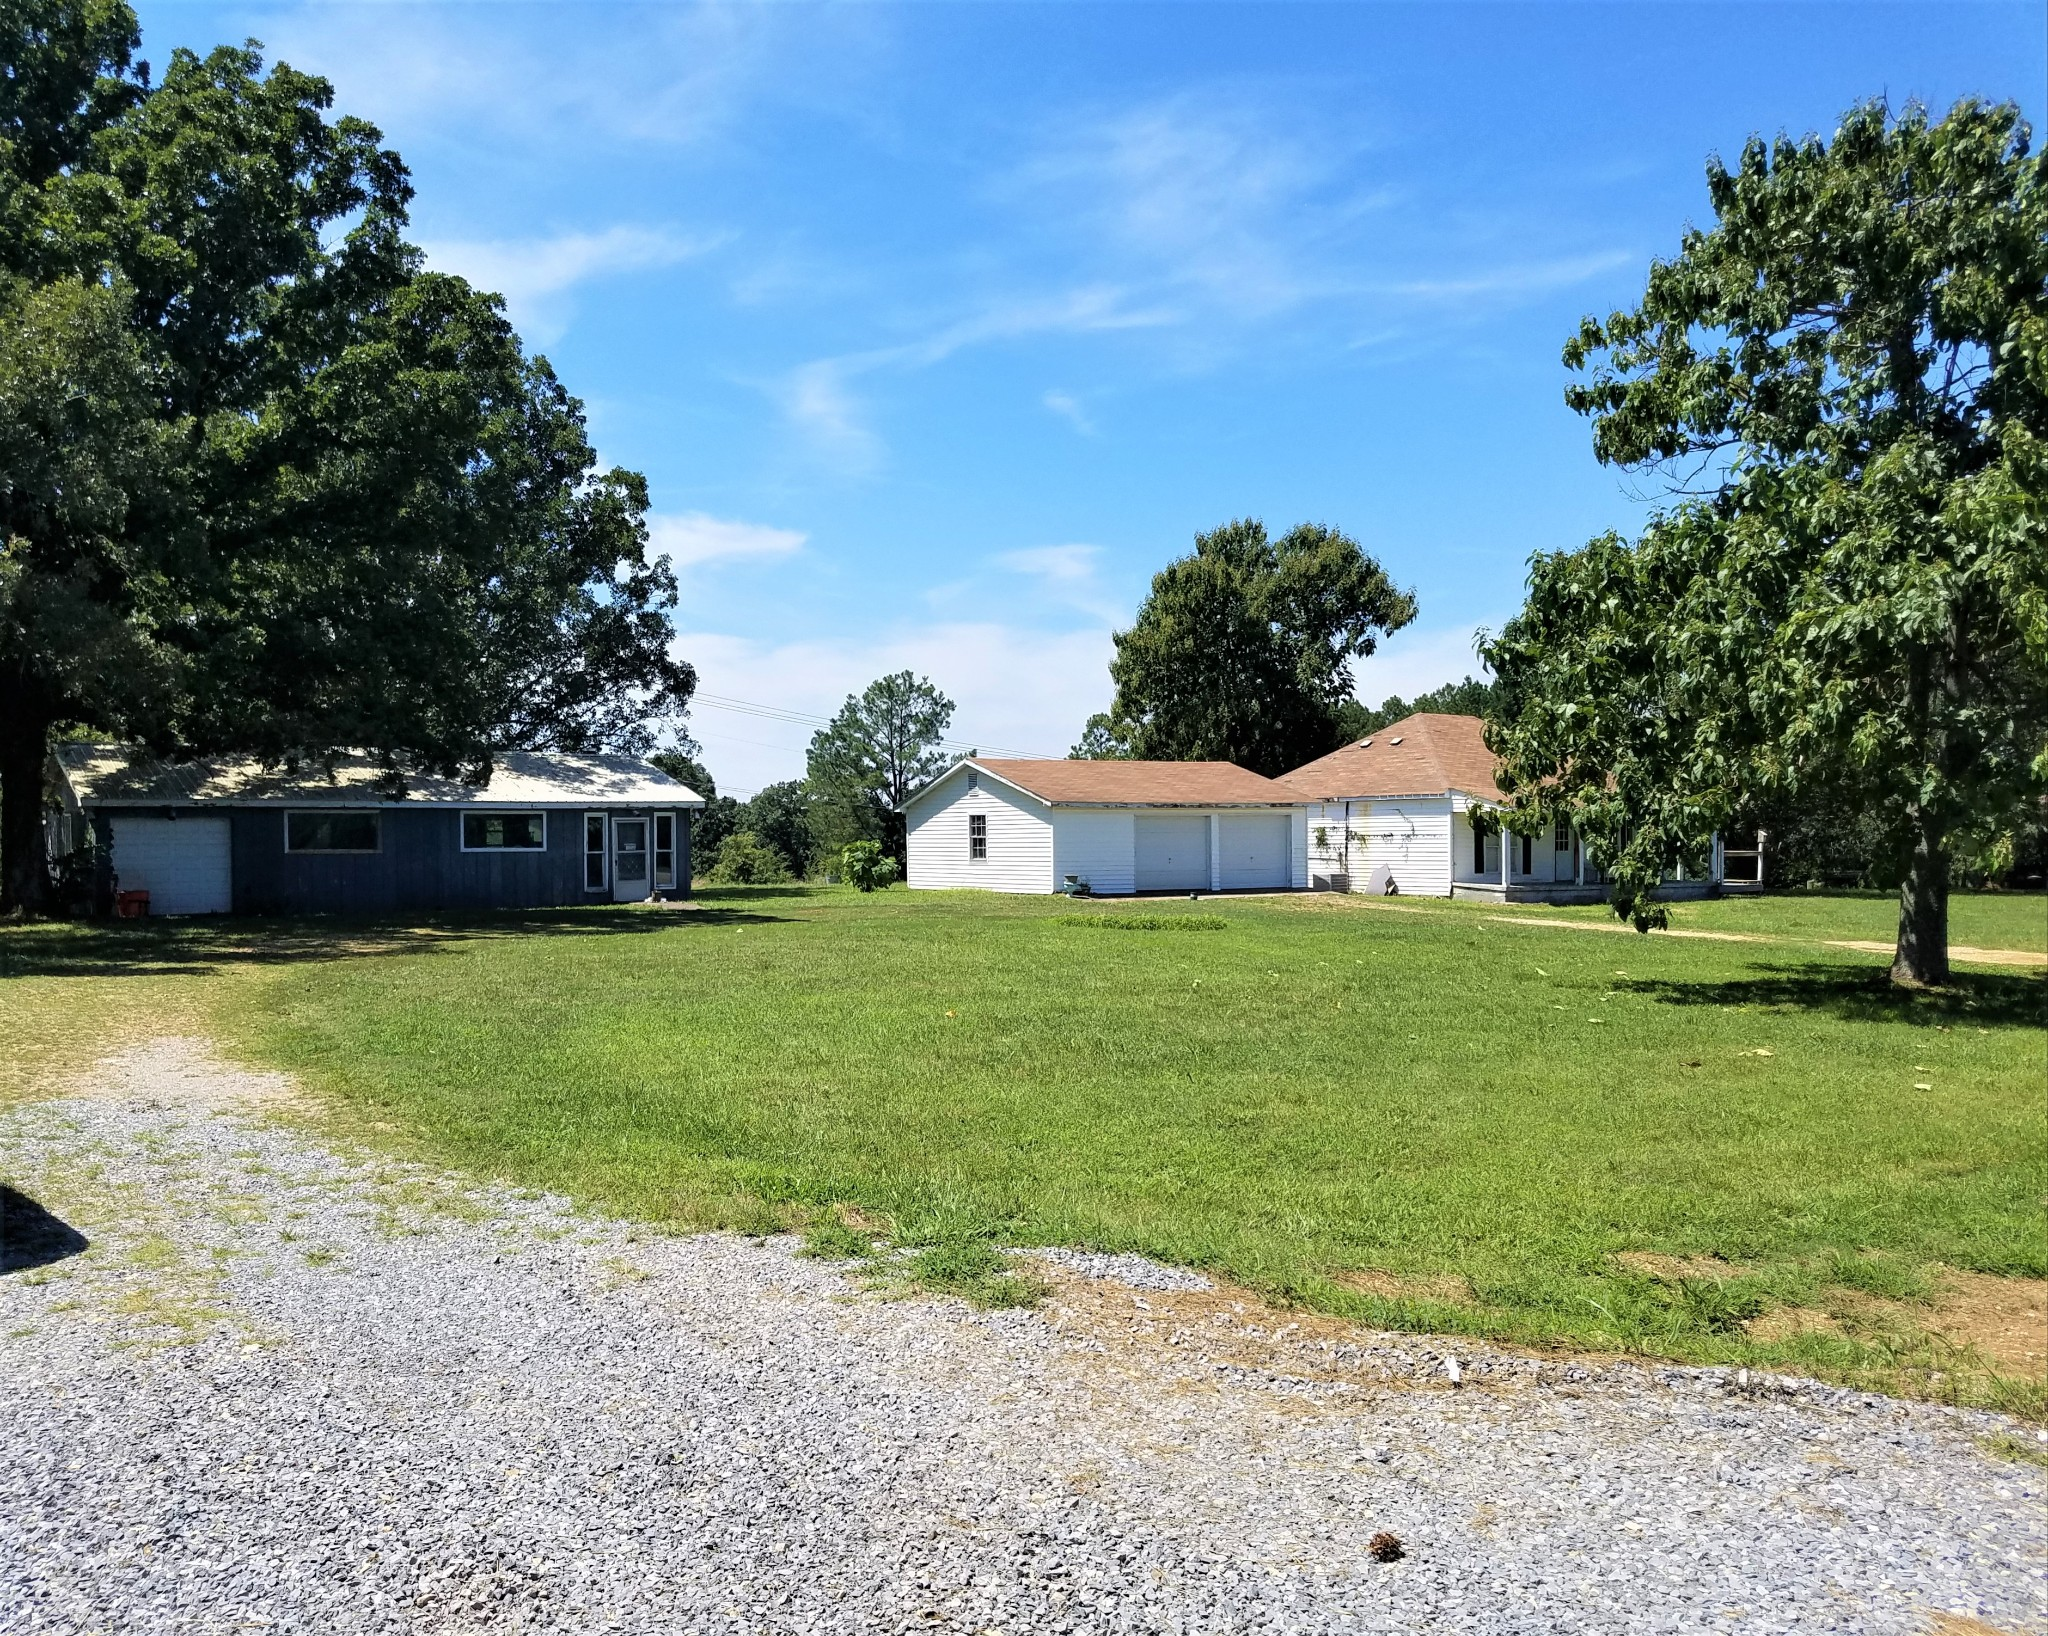 Beautiful 3.99 flat acres, 2 bed/1 bath home, 2 stall garage, 1 stall shop, fencing for cattle or horses! Selling AS-IS. There are renters here. Please do not go on to the property with out permission.